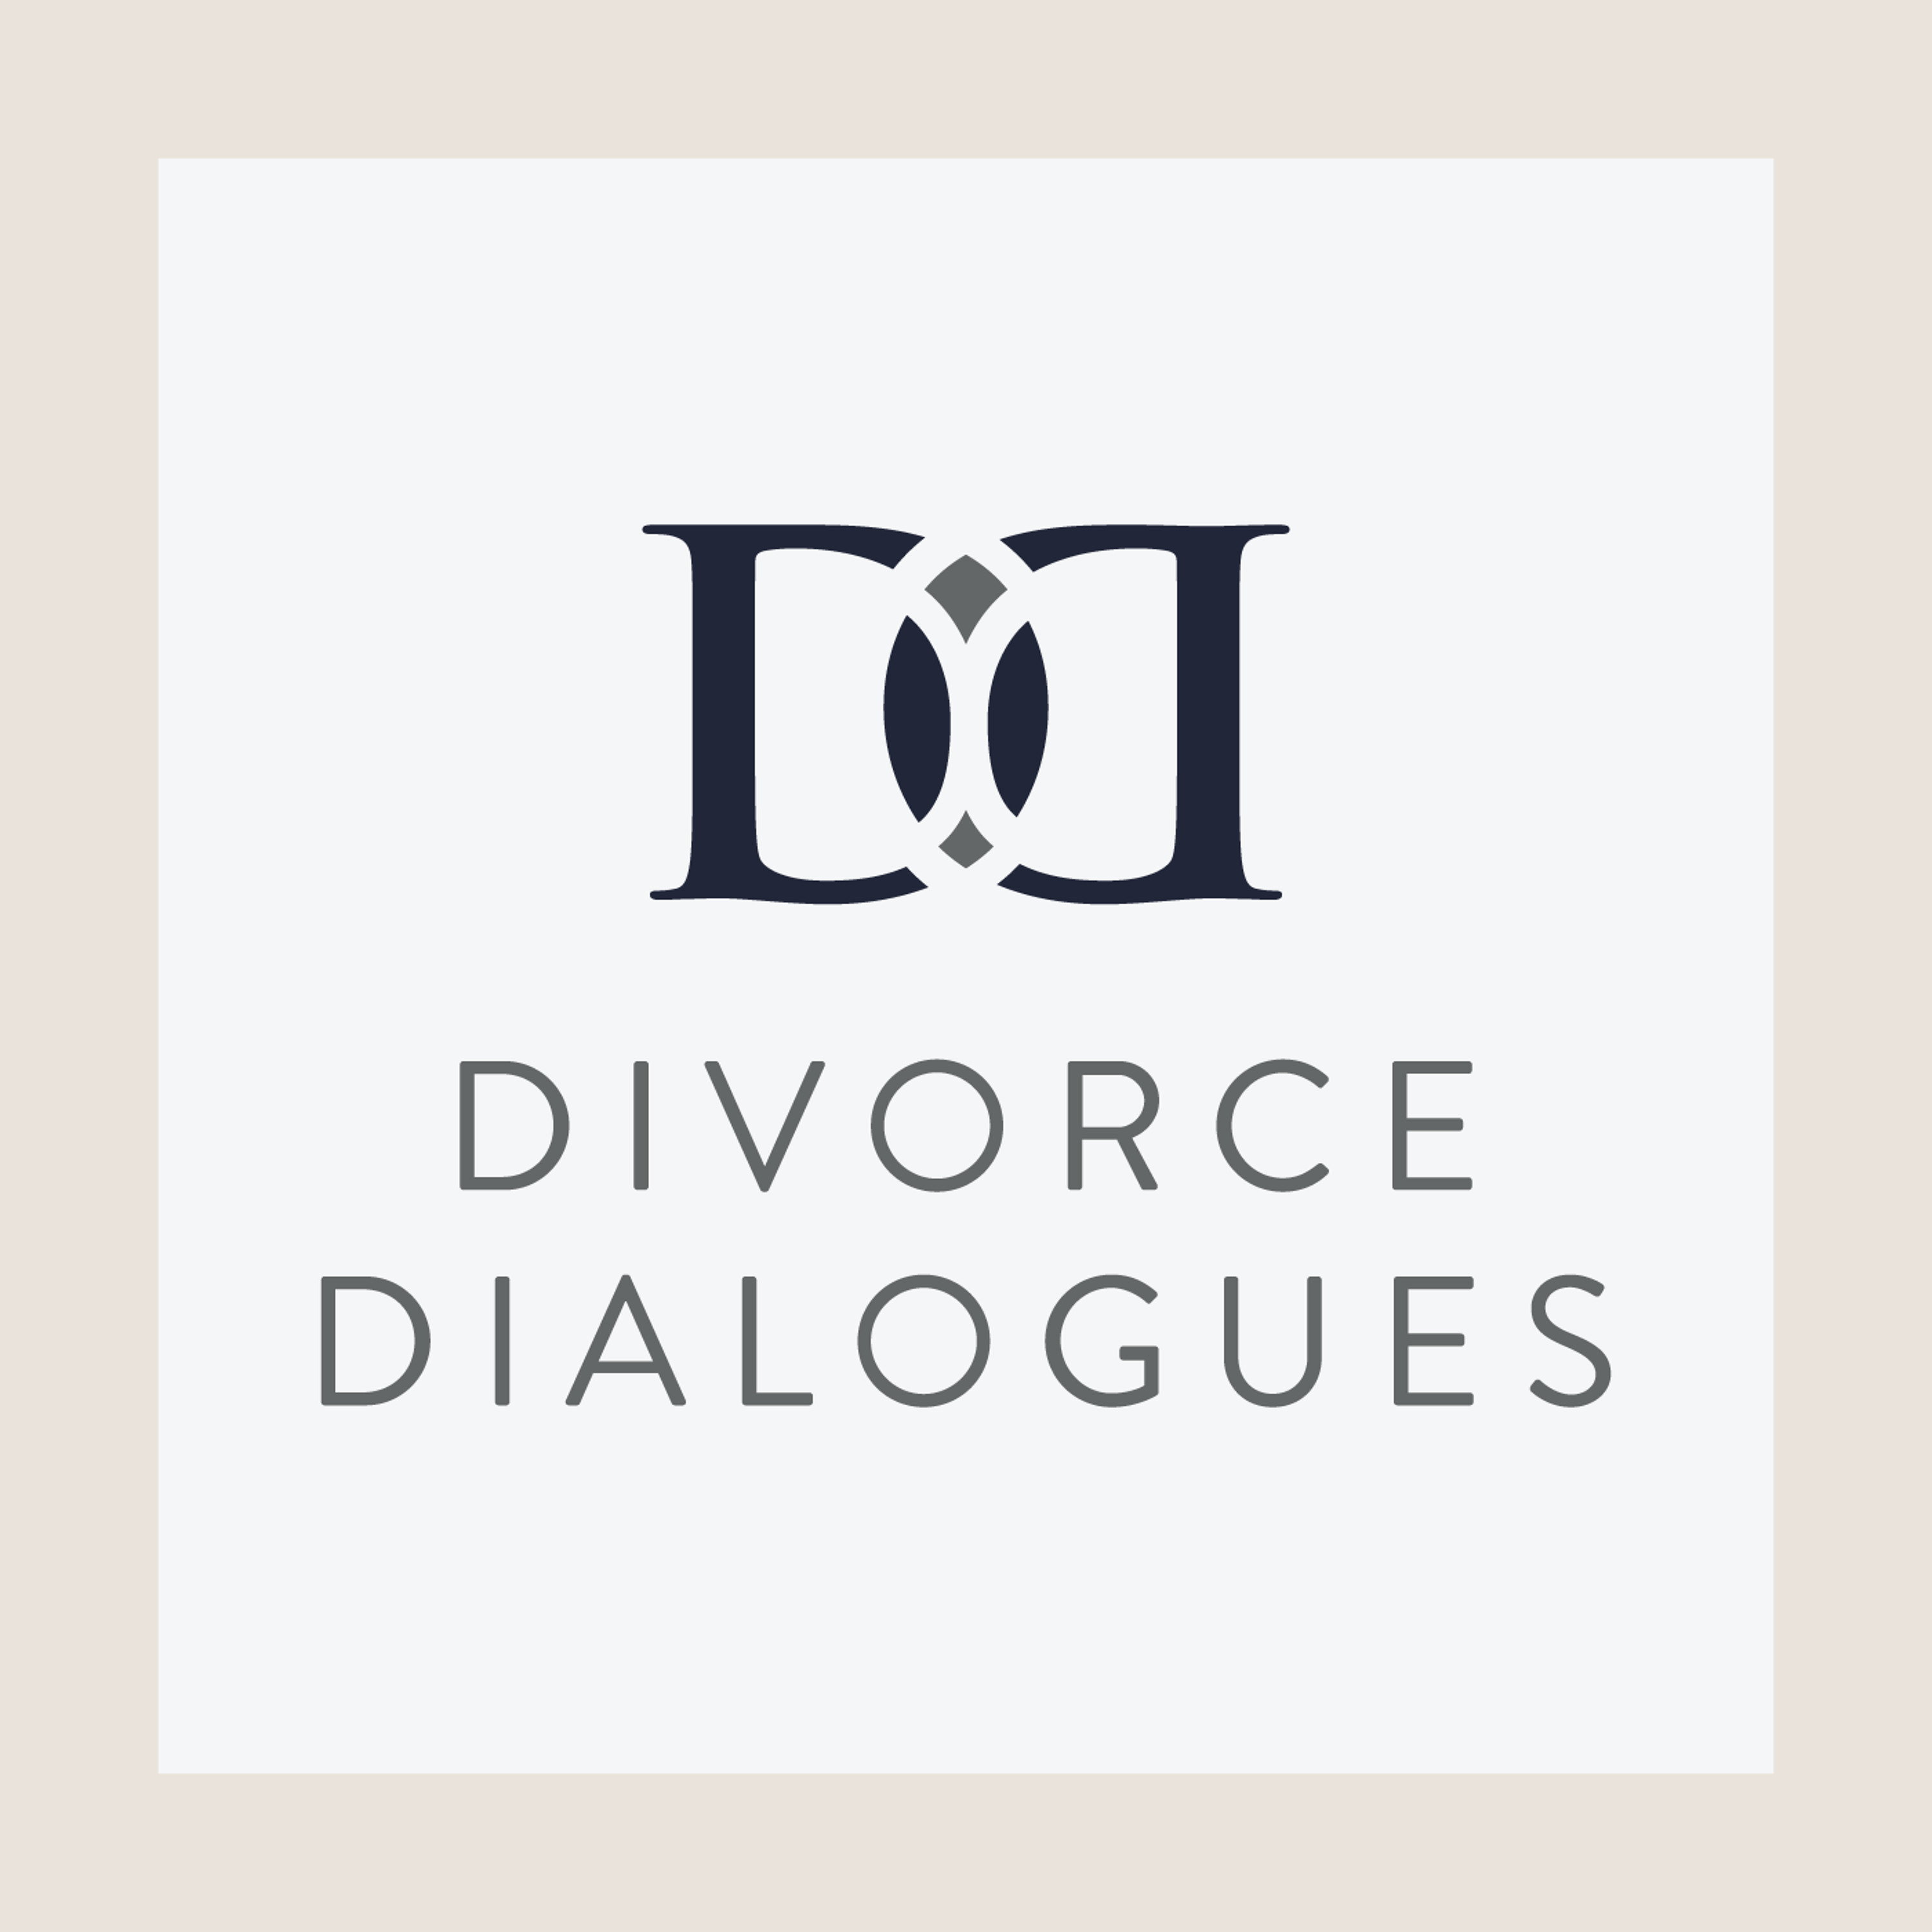 Divorce Dialogues - Empowering Divorcing Couples to Communicate Through Mediation with Linda Schoonover Carley